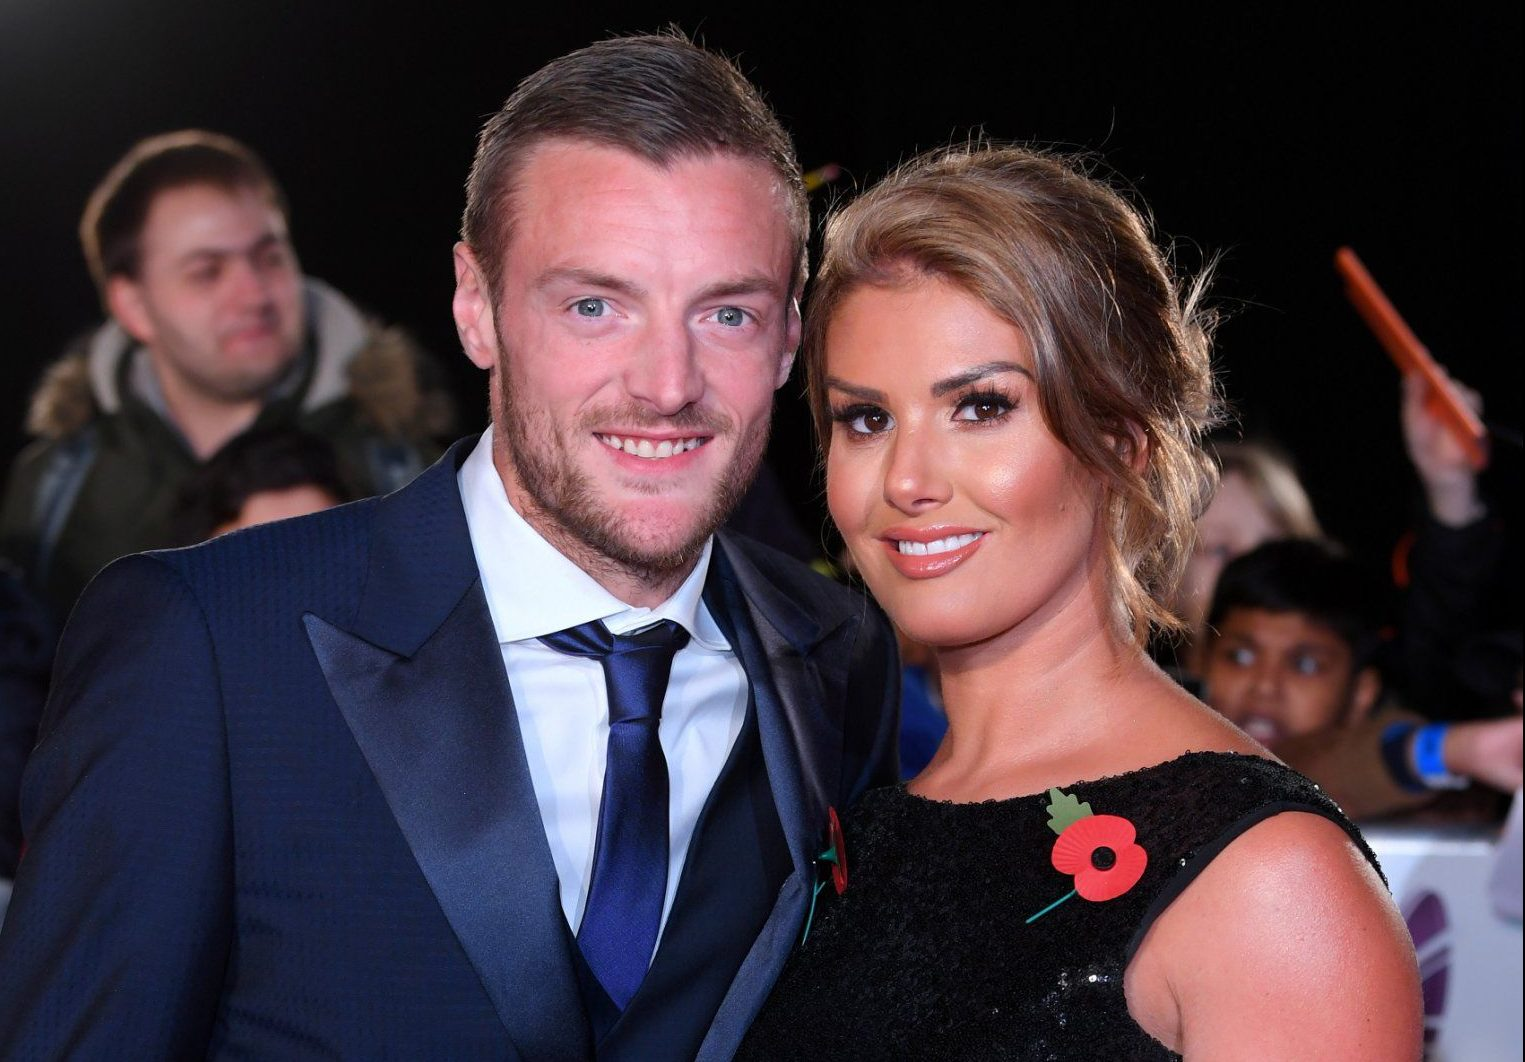 Rebekah Vardy 'didn't think about sex with husband Jamie' during I'm A Celeb because she was too hungry